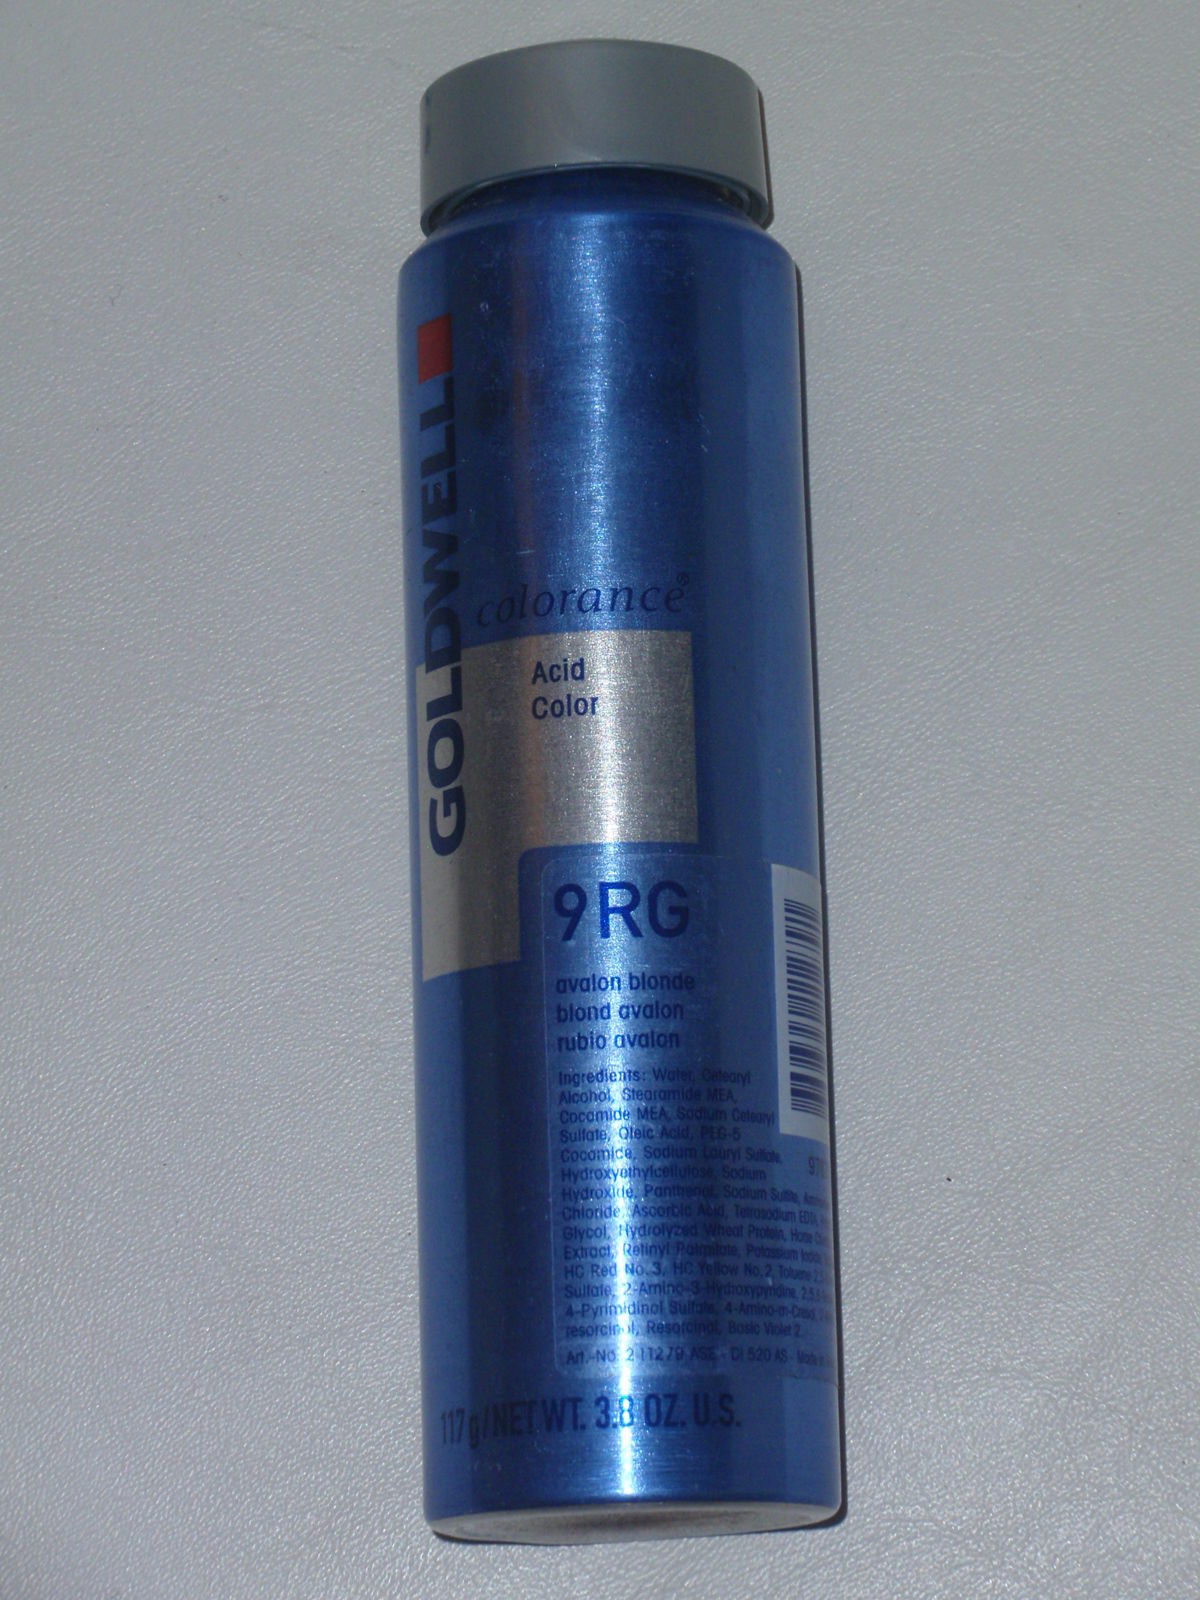 Goldwell Colorance Demi Permanent Color 9rg And 50 Similar Items